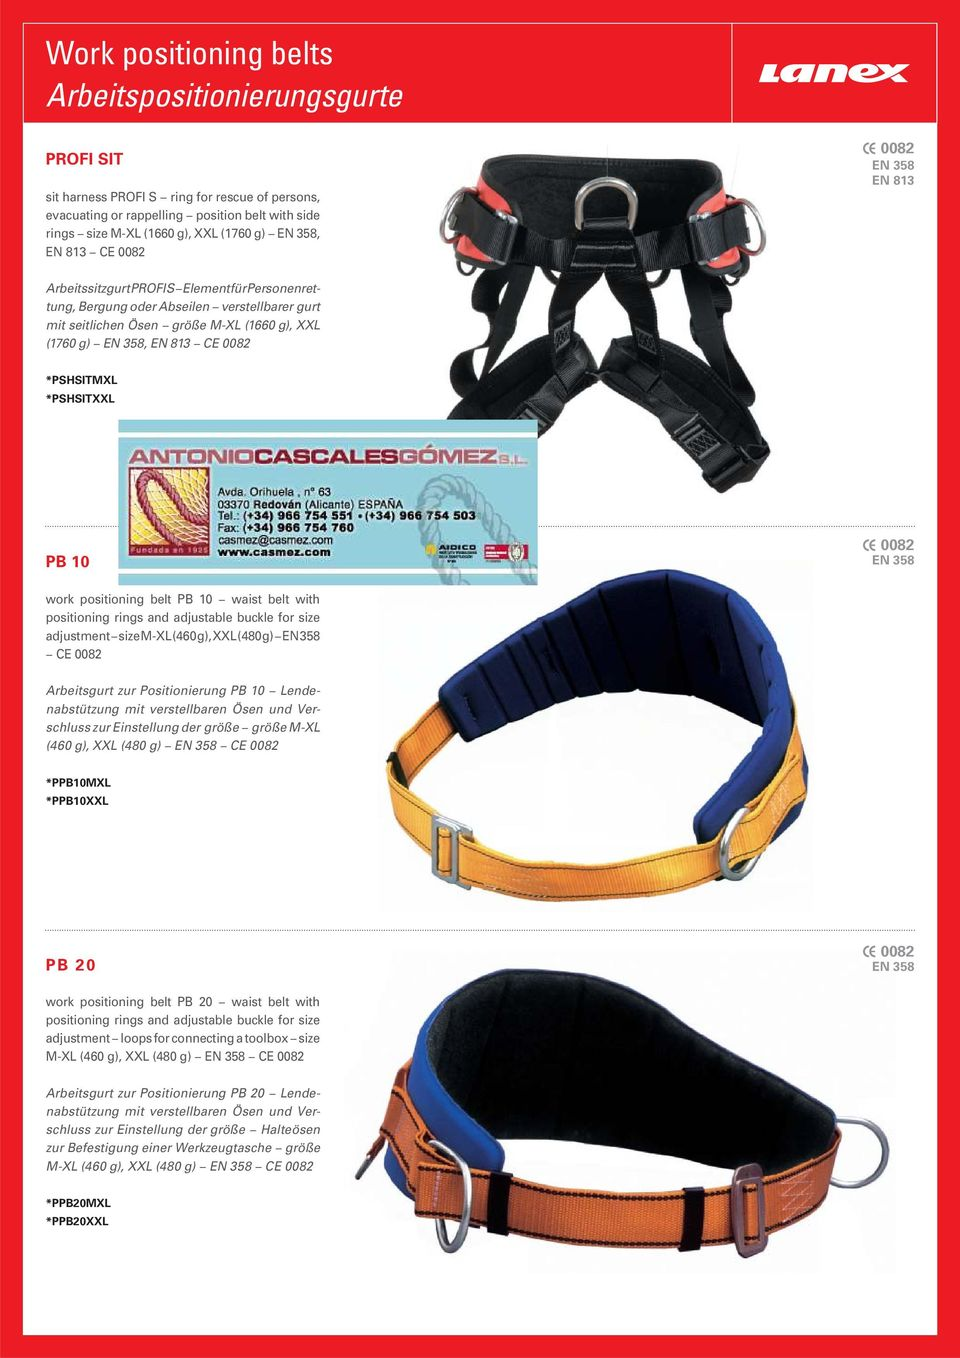 *PSHSITMXL *PSHSITXXL PB 10 EN 358 work positioning belt PB 10 waist belt with positioning rings and adjustable buckle for size adjustment size M-XL (460 g), XXL (480 g) EN 358 CE Arbeitsgurt zur